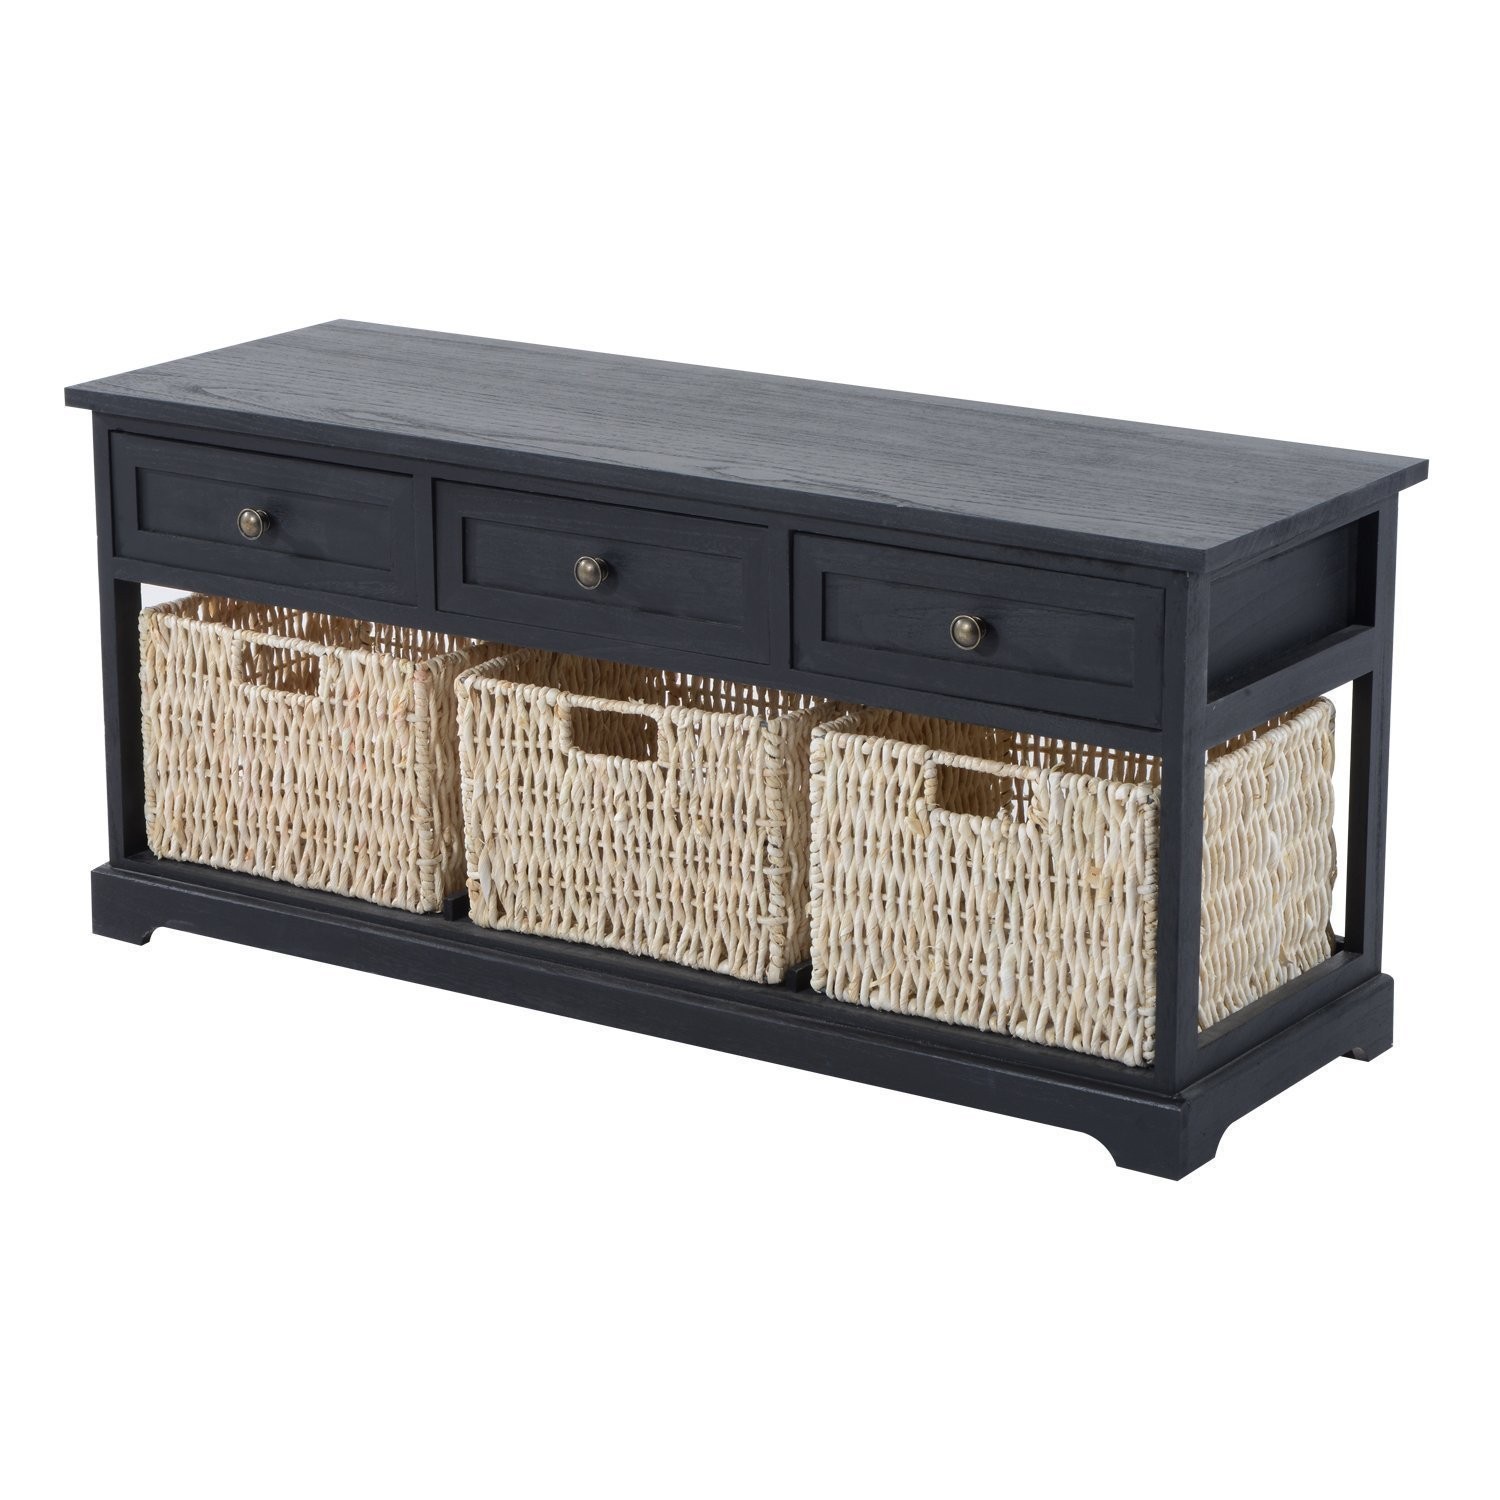 HomCom 40'' 3-Drawer 3-Basket Storage Bench - Antique Black